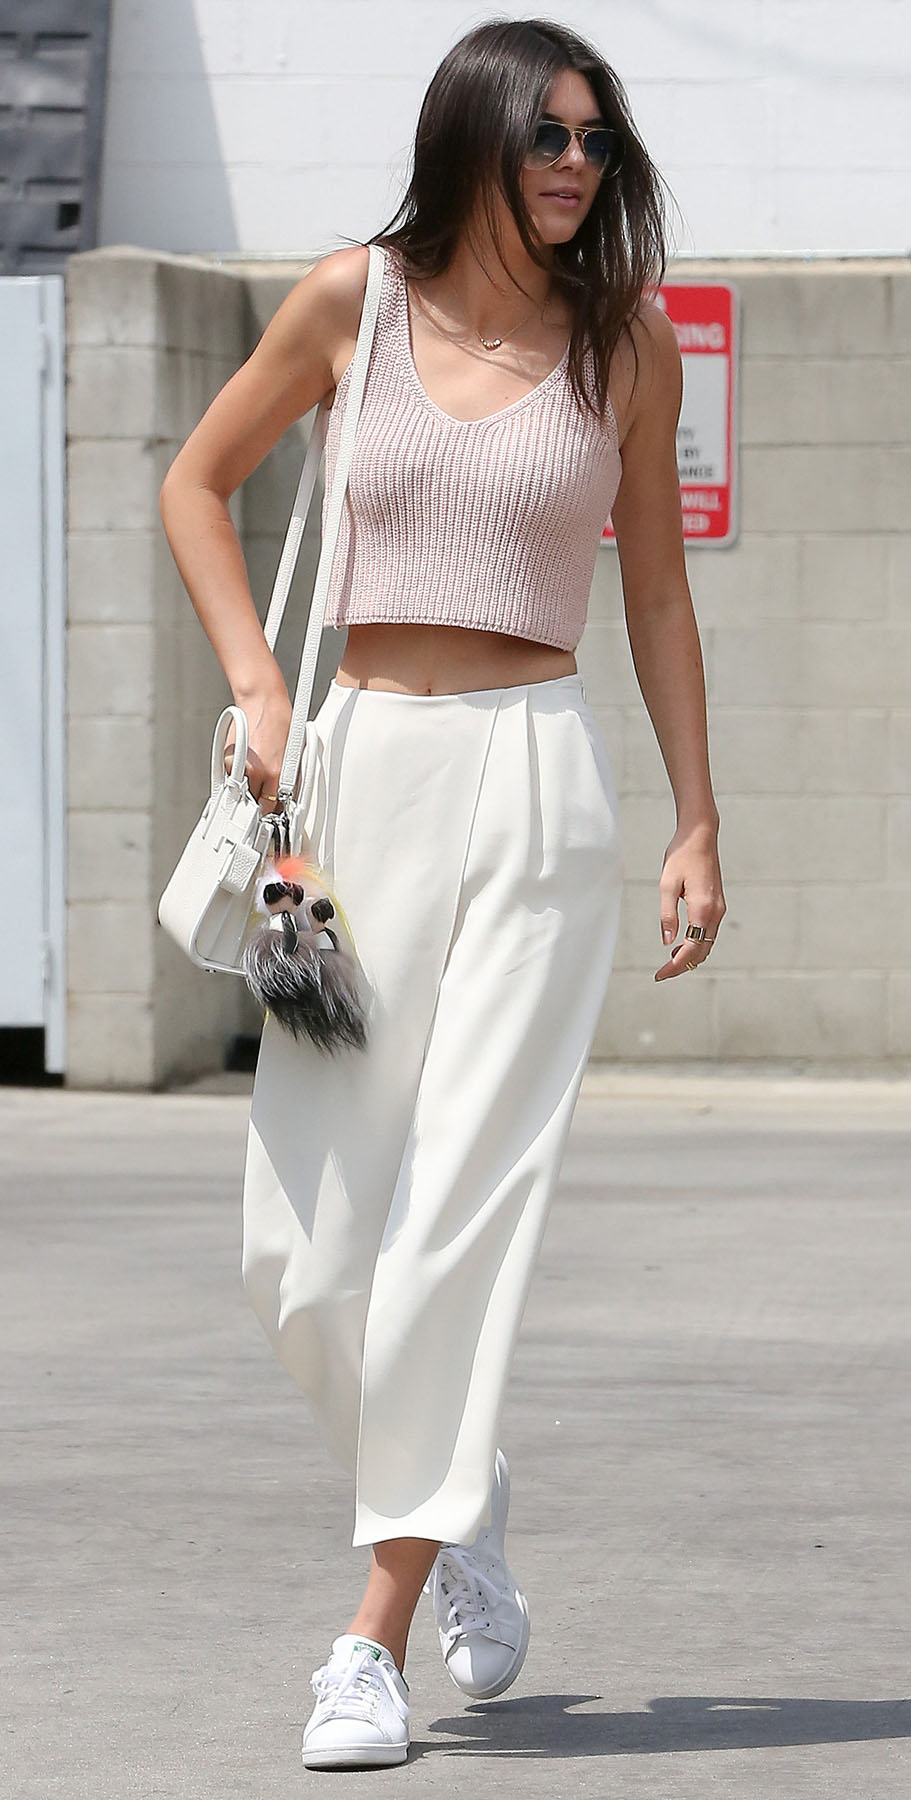 white-culottes-pants-pink-light-crop-top-white-bag-white-shoe-sneakers-brun-kendalljenner-howtowear-valentinesday-outfit-fall-winter-weekend.jpg